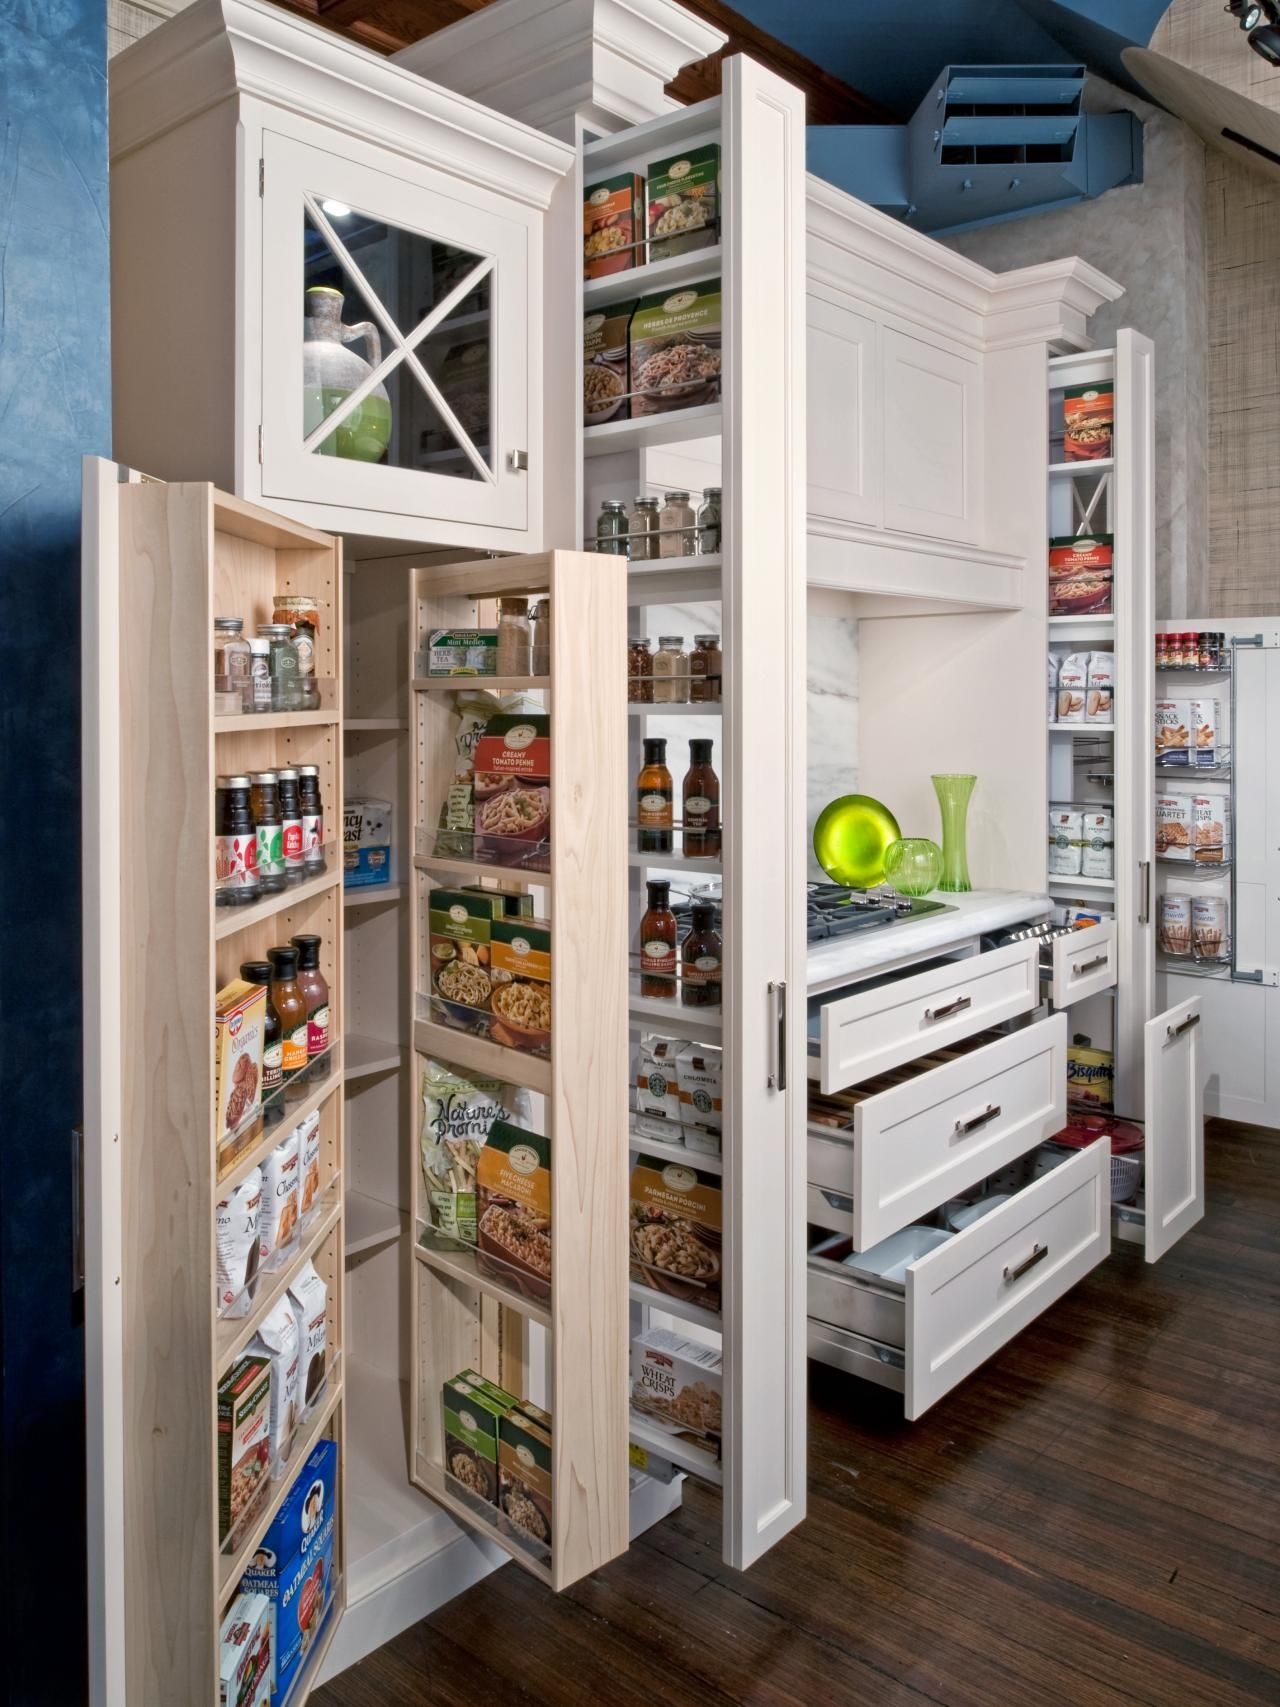 The best images about kitchen on pinterest sliding shelves